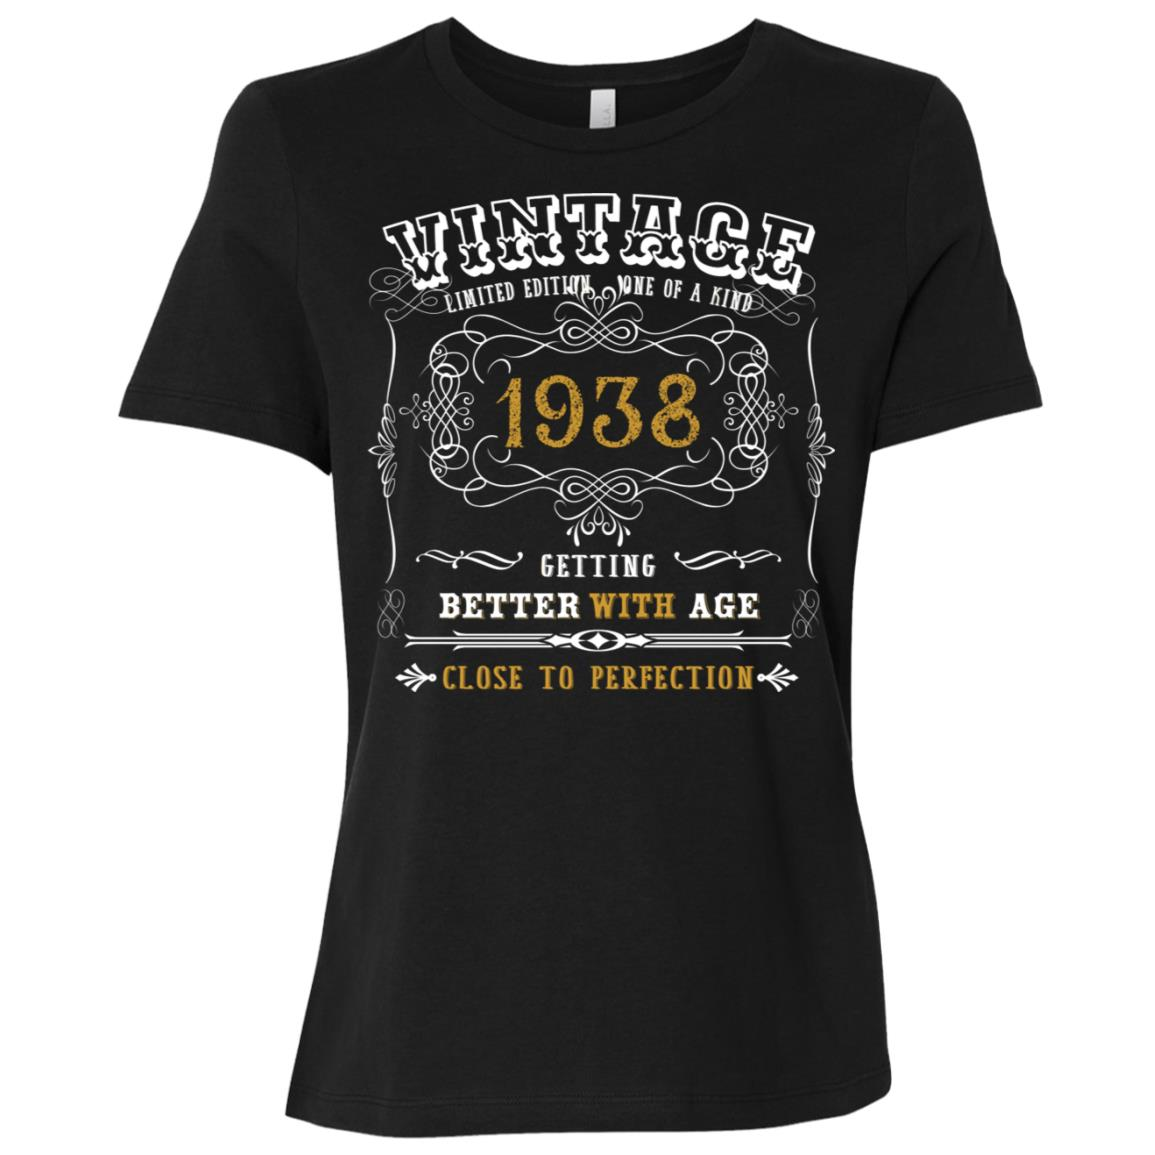 80th year old Funny Birthday Gifts 1938 Limited Edition Tee Women Short Sleeve T-Shirt